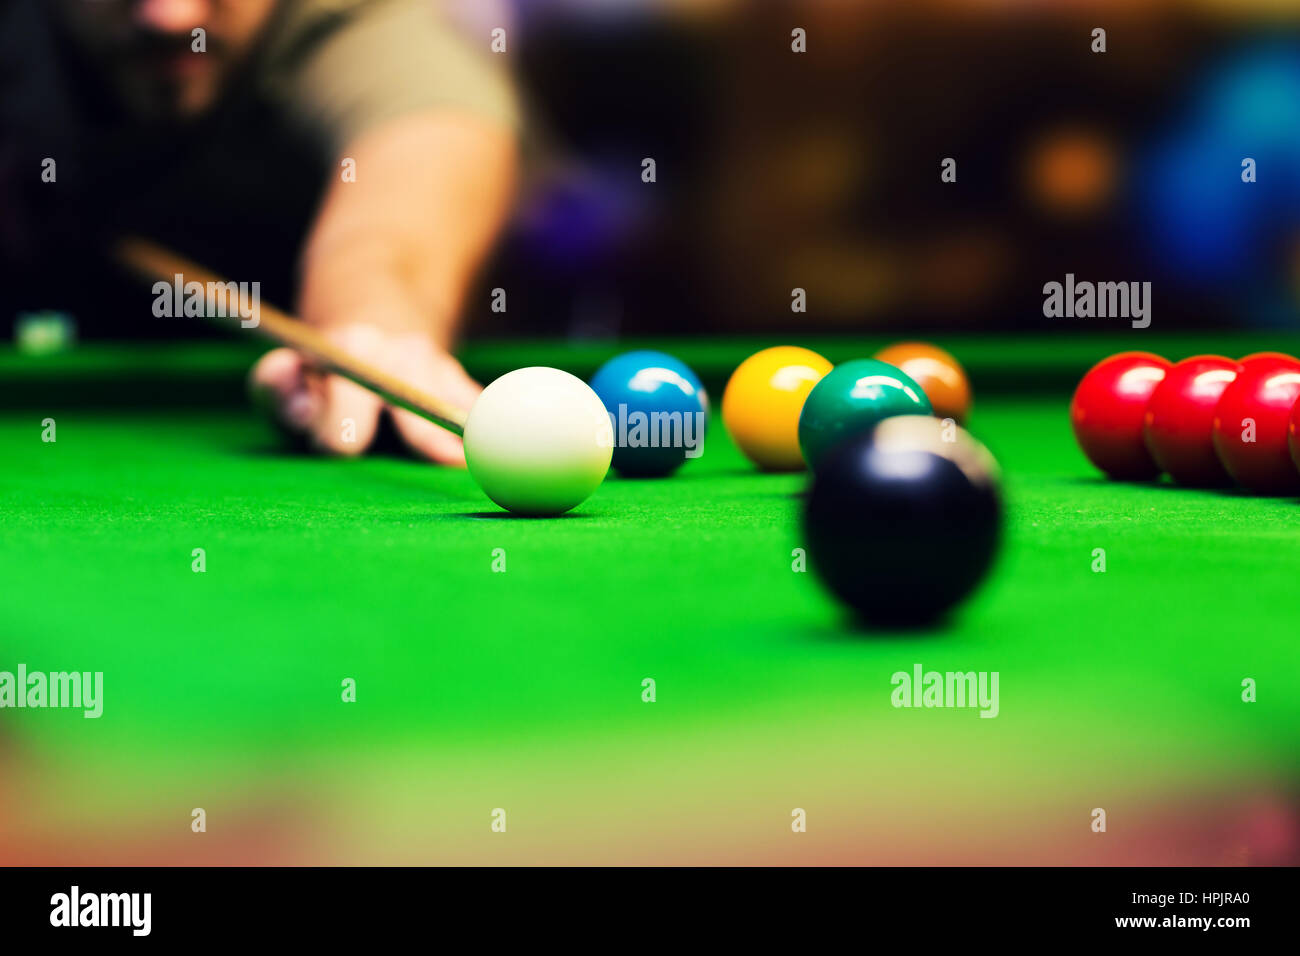 playing snooker - man aiming the cue ball - Stock Image